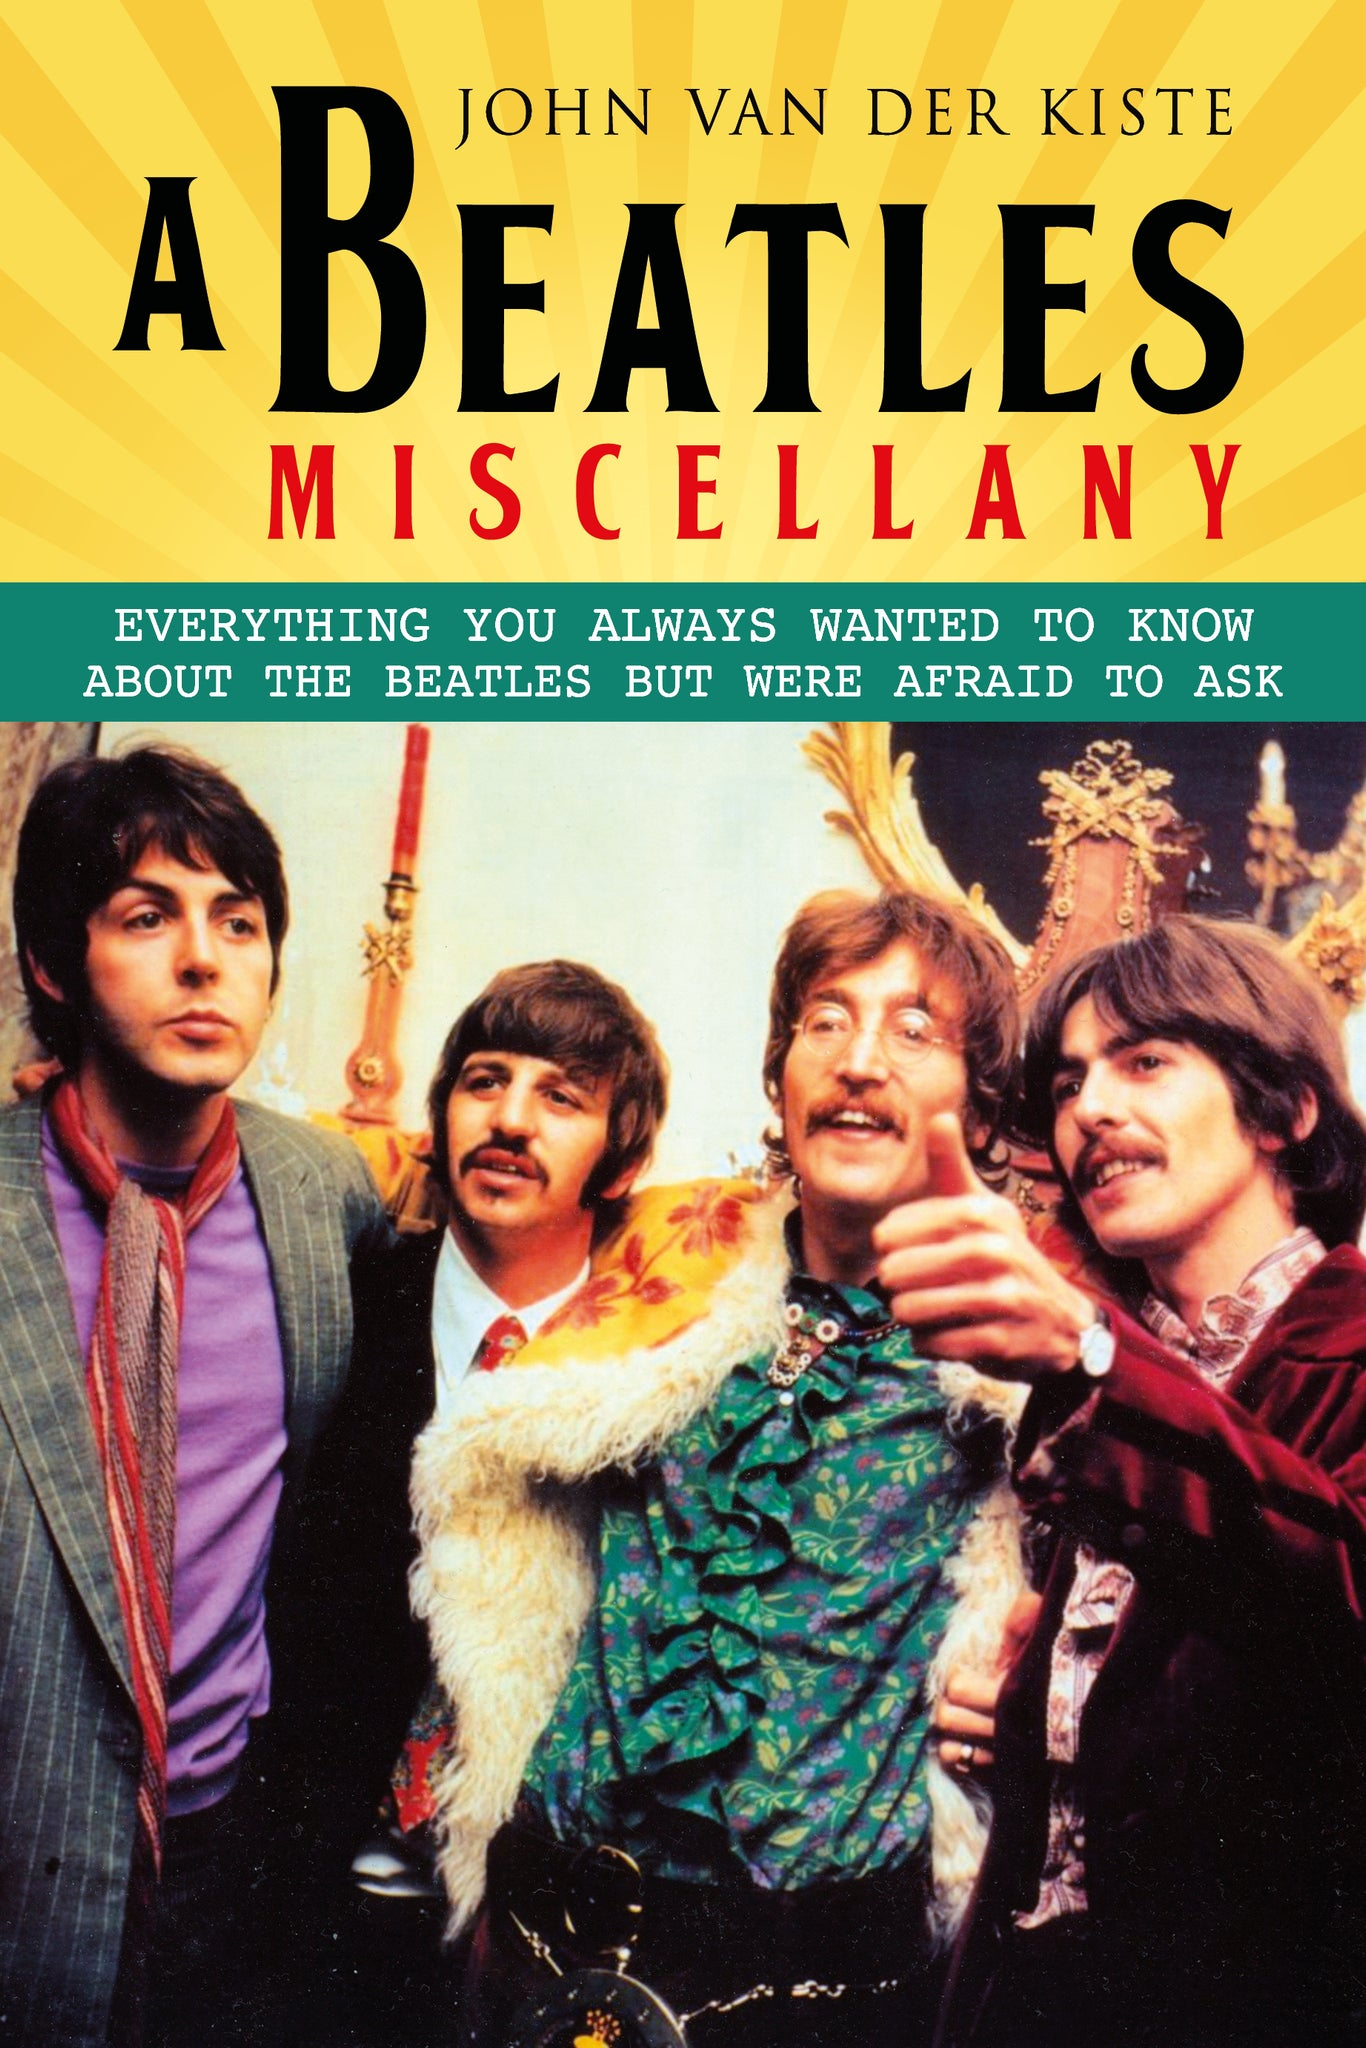 A Beatles Miscellany - available now from Fonthill Media